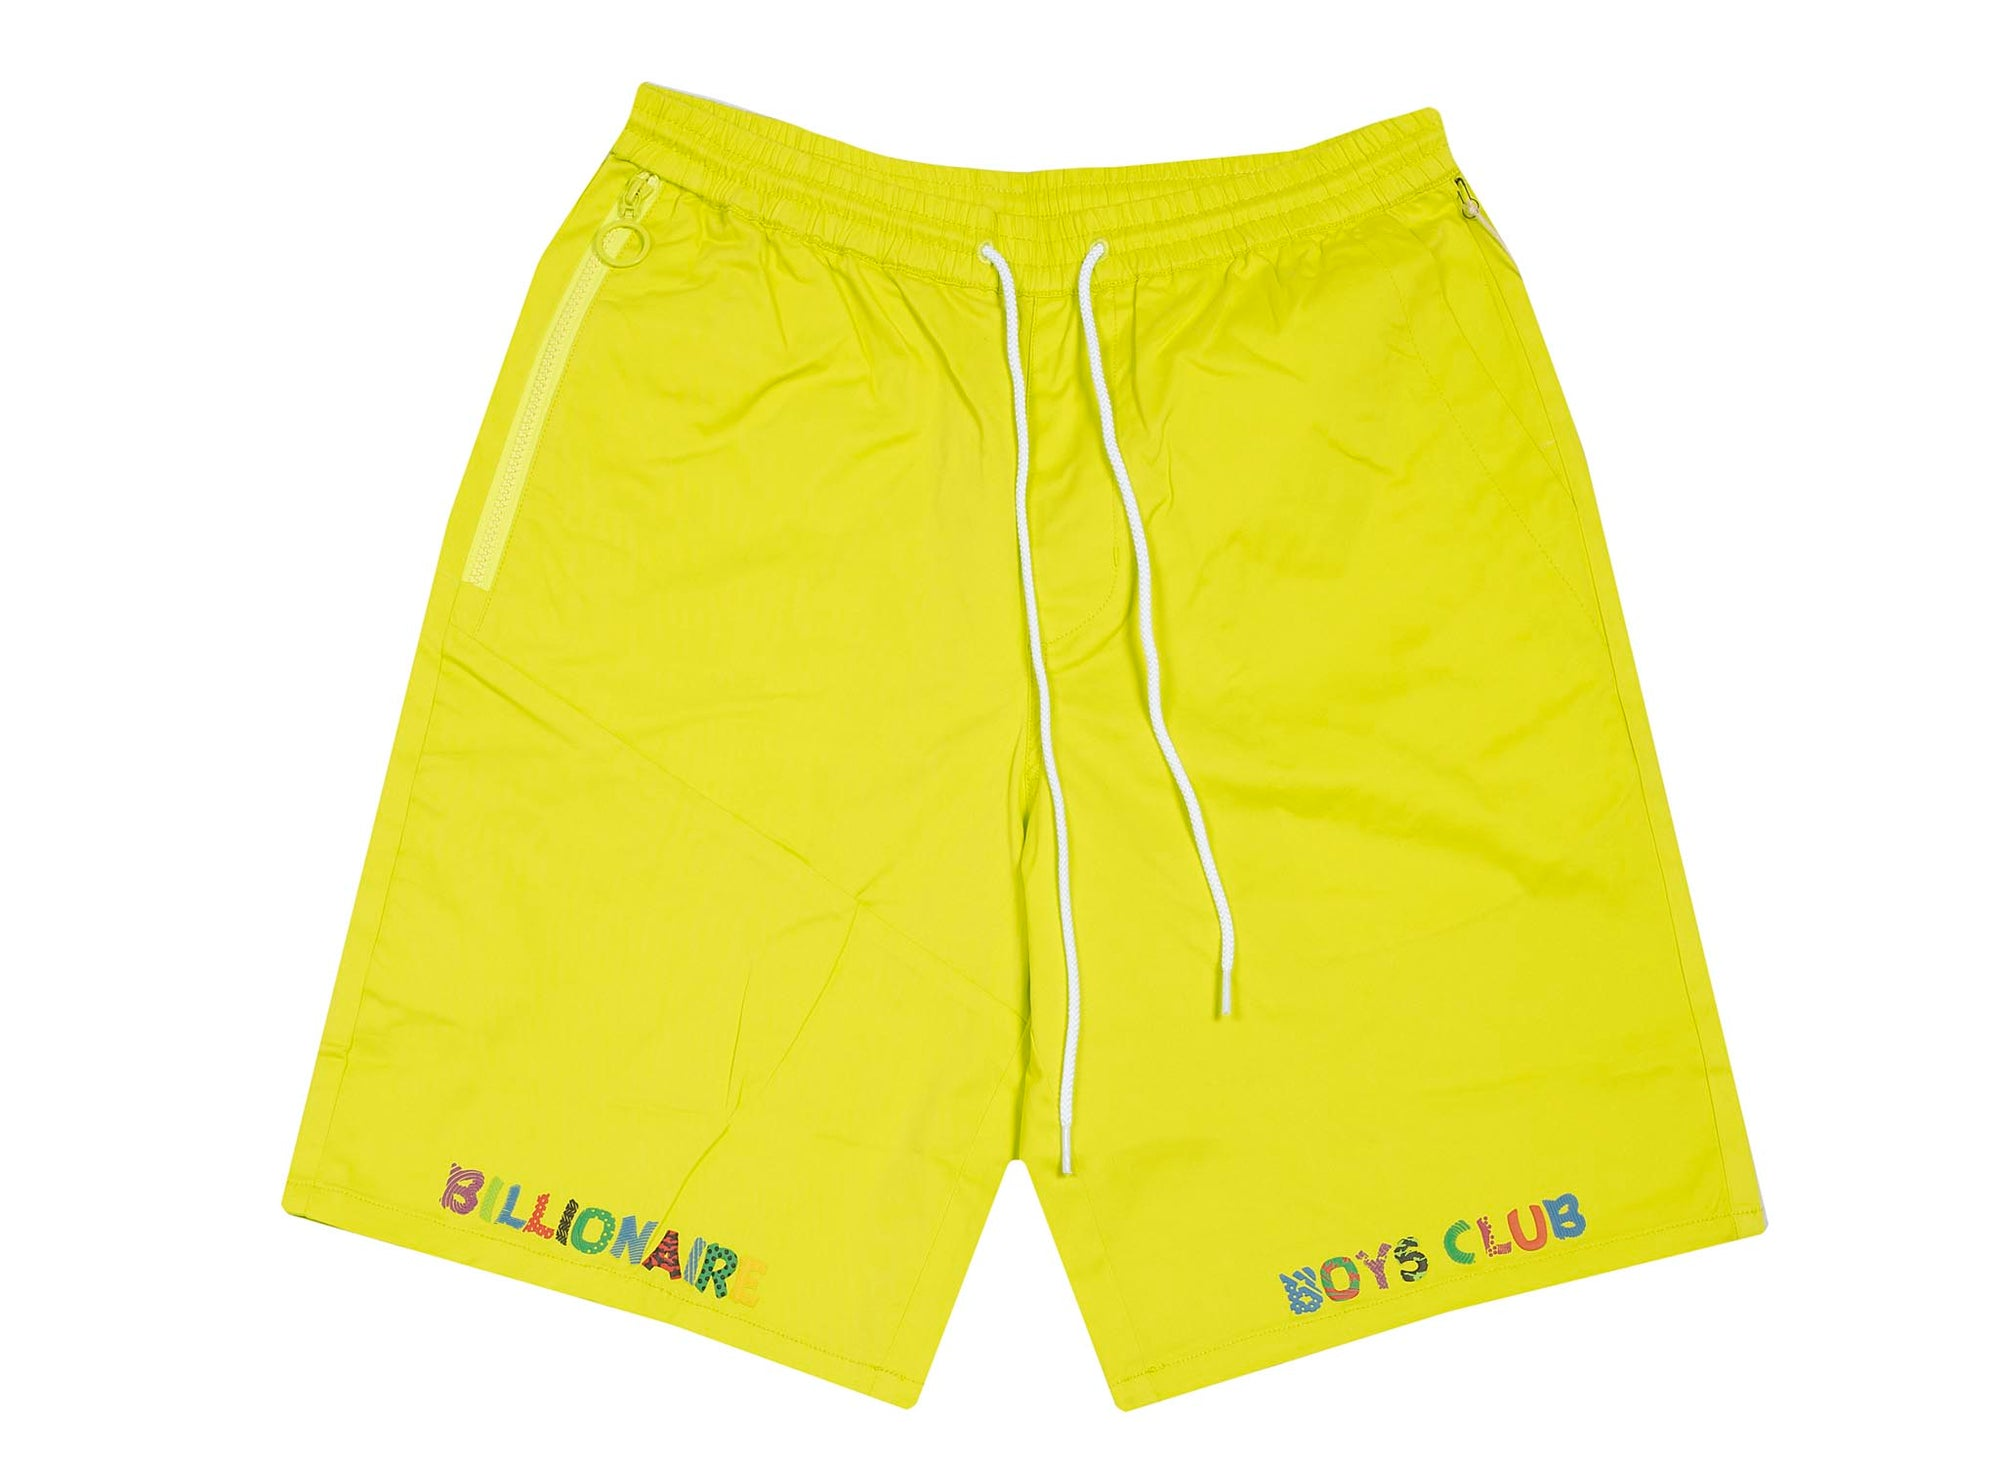 BBC BILLIONAIRE BOYS CLUB SMILES SHORT